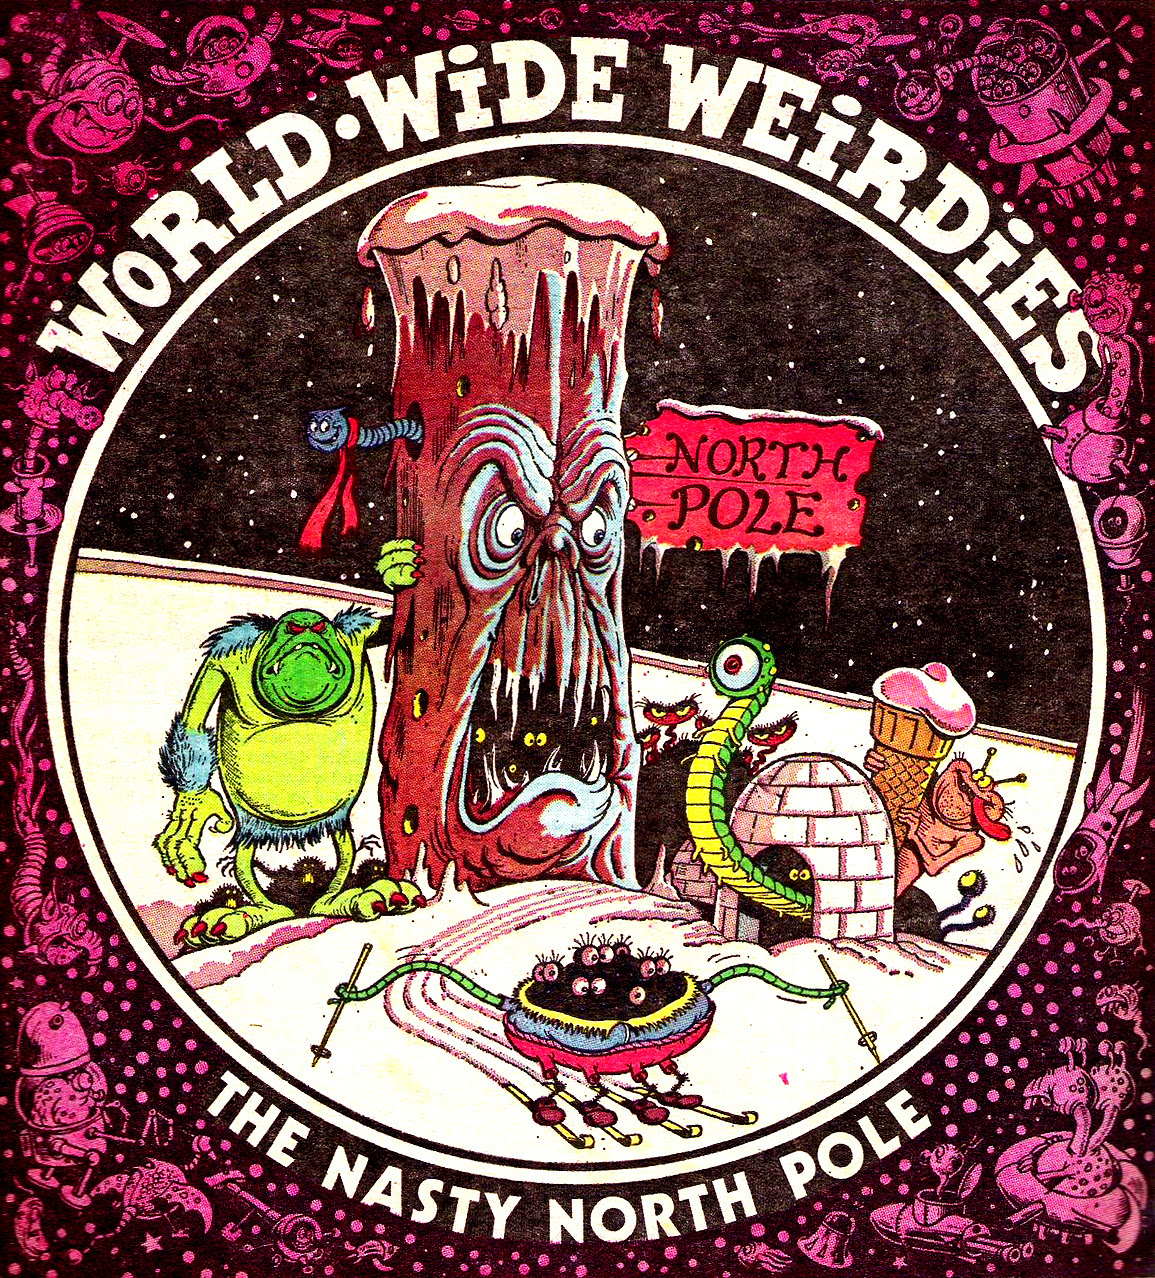 Ken Reid - World Wide Weirdies 19